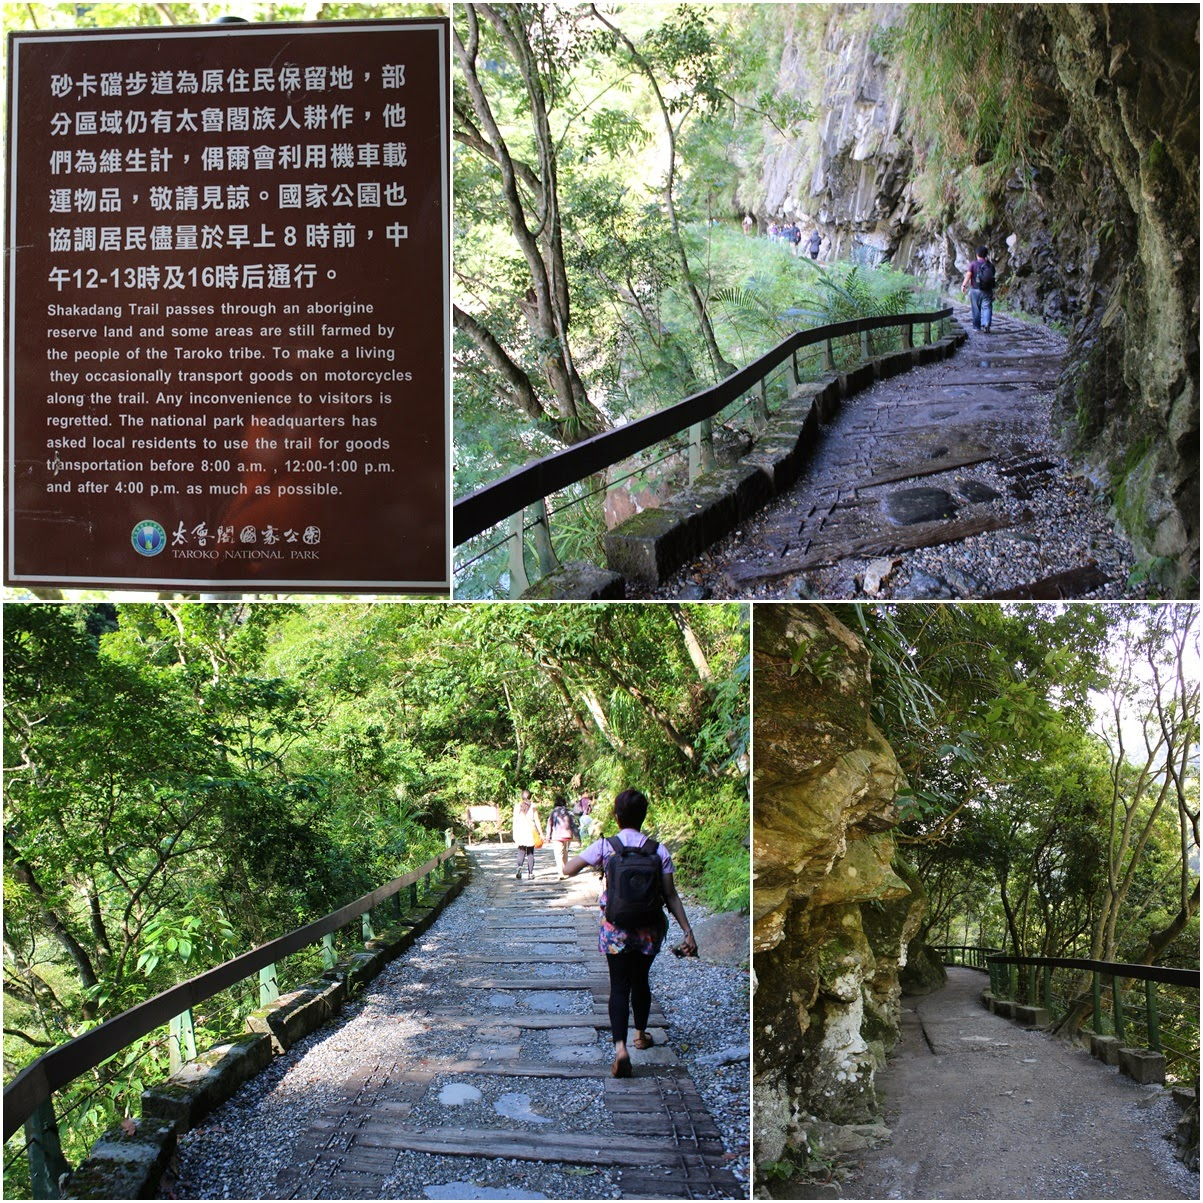 Walking along narrow, steep and uneven path of Shakadang Trail which takes you to the aborigine people of the Taroko Tribe at Taroko Groge National Park in Hualien, Taiwan